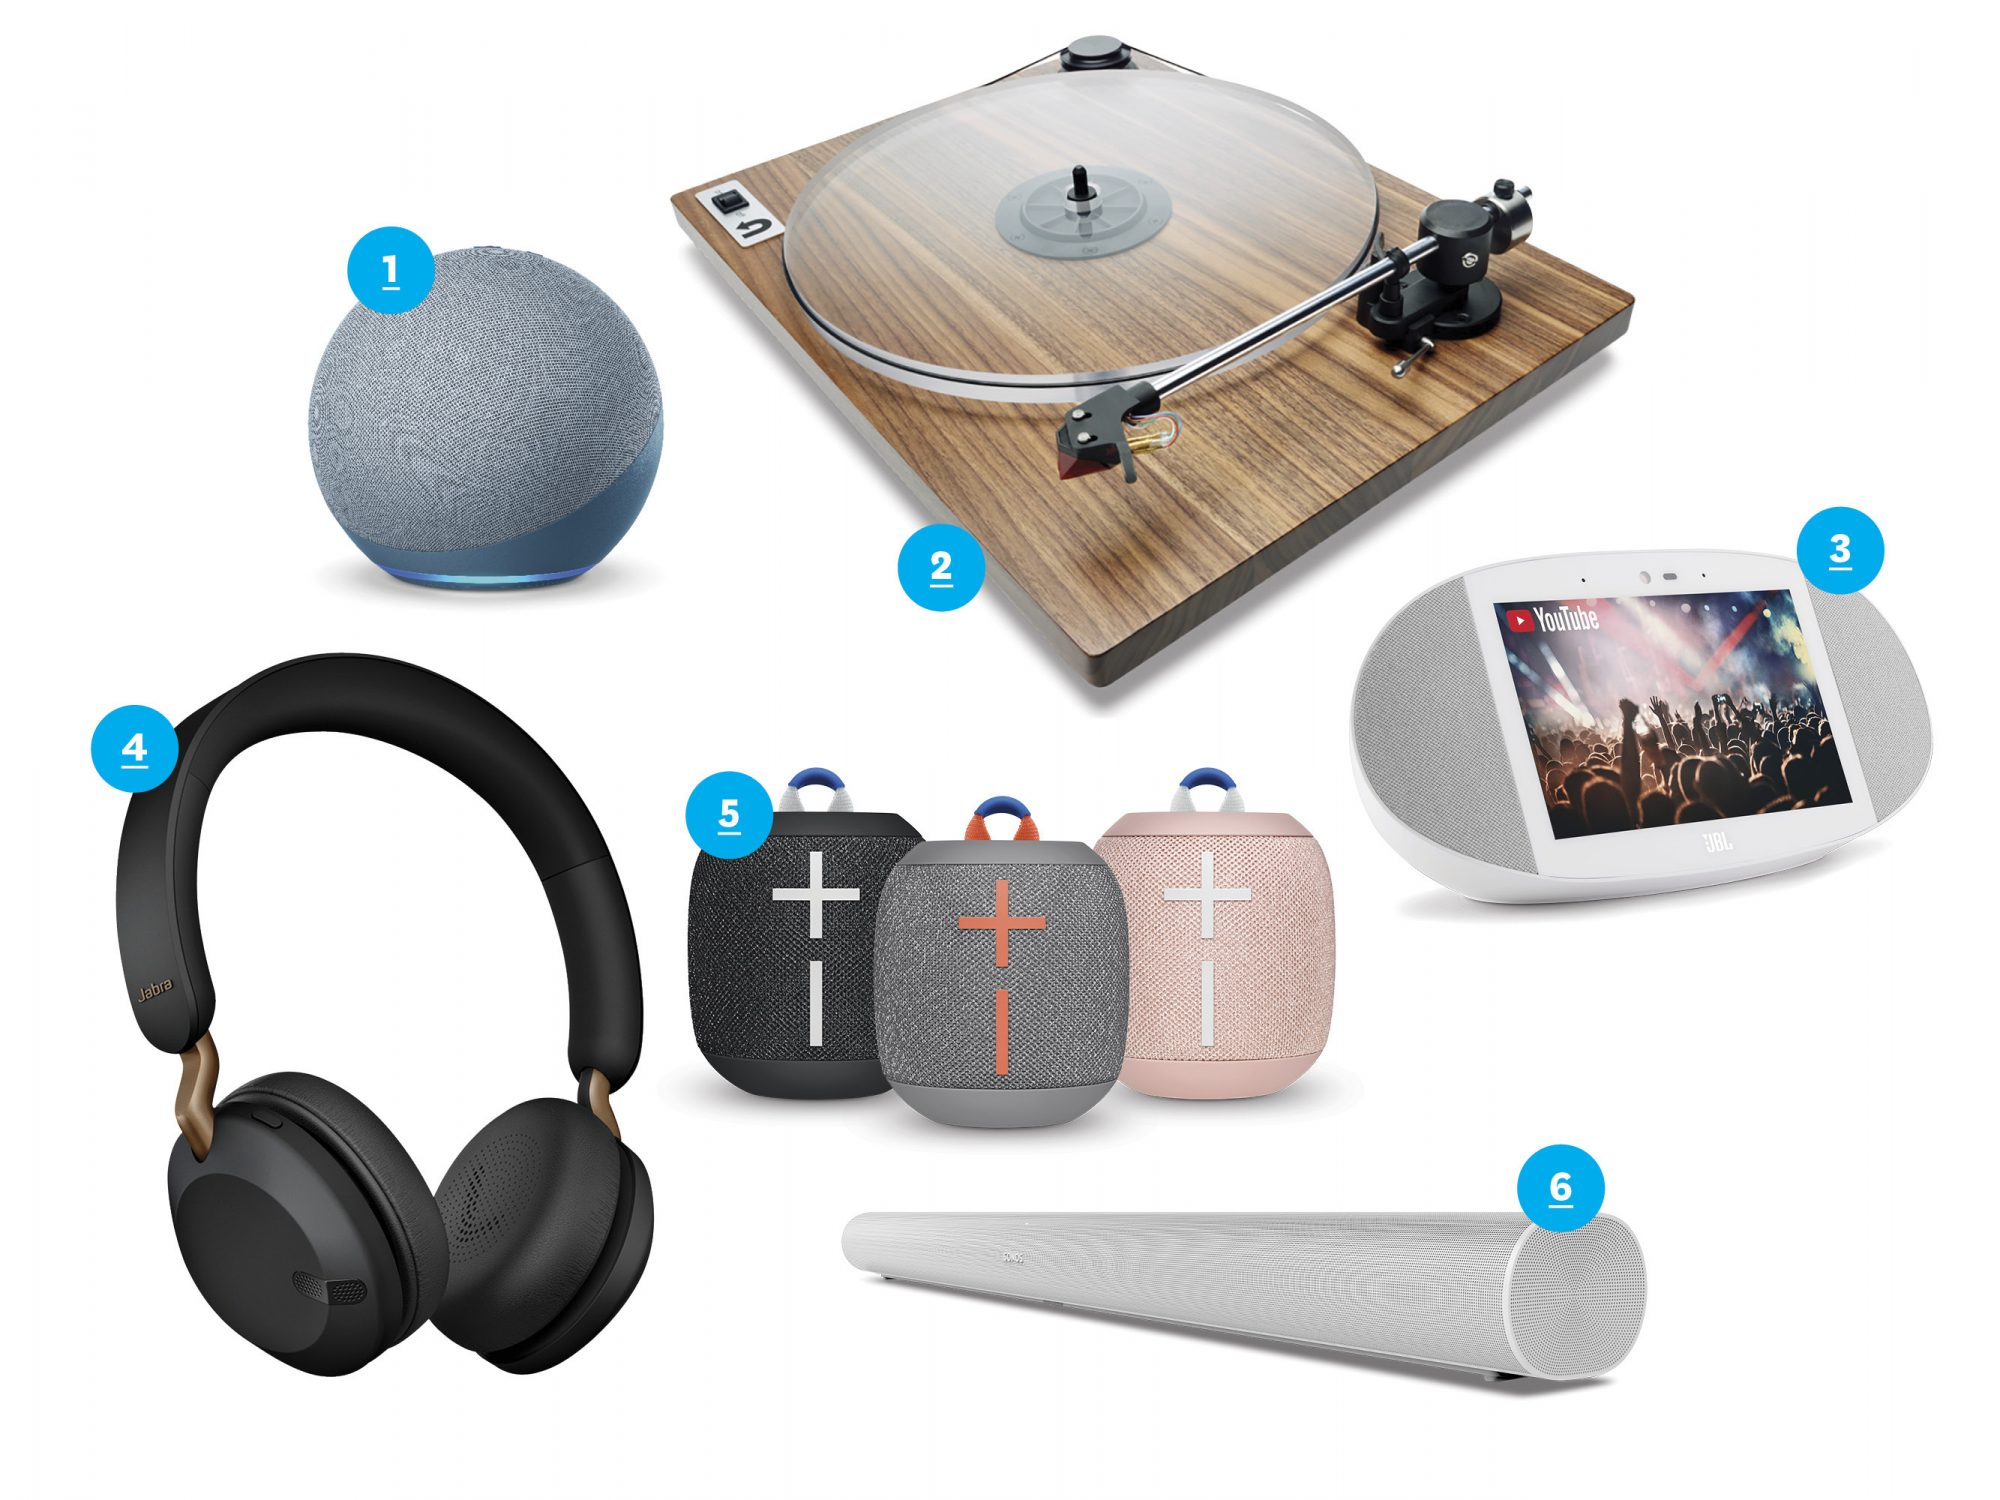 Home sound system products